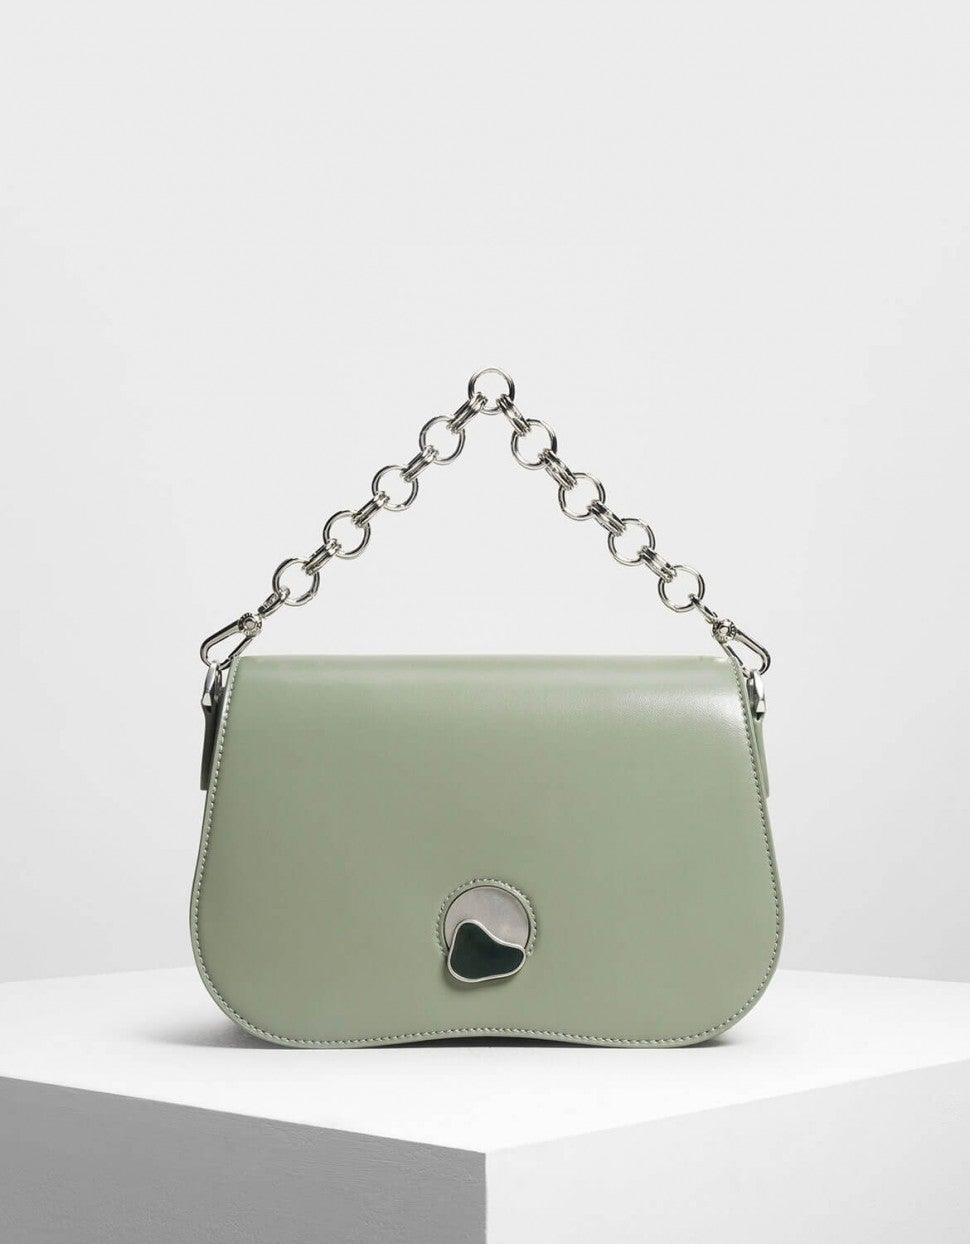 Charles & Keith curved edge bag